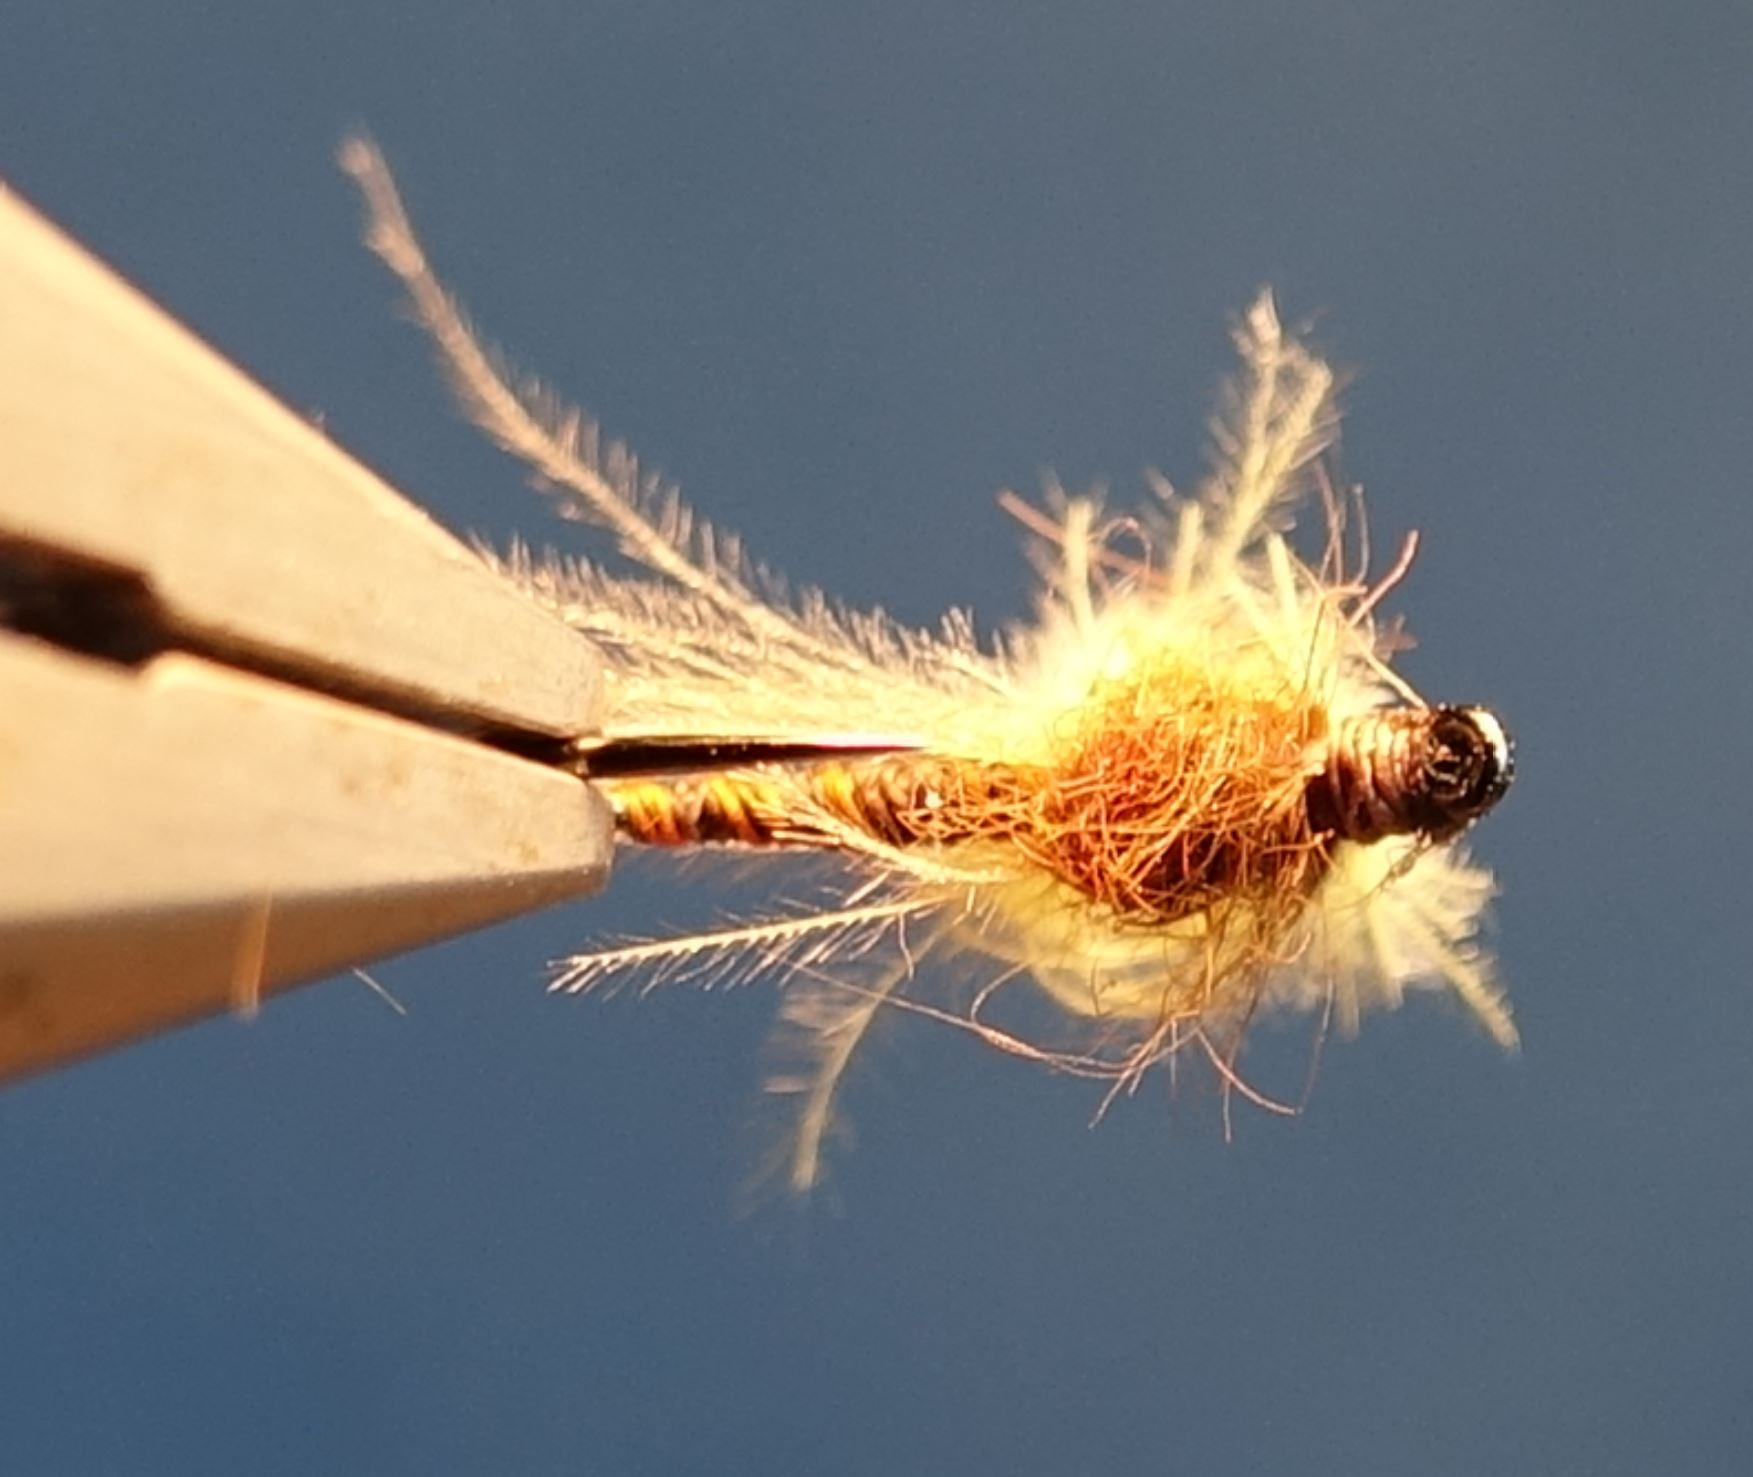 Sulfure emergente fly tying mouche eclosion